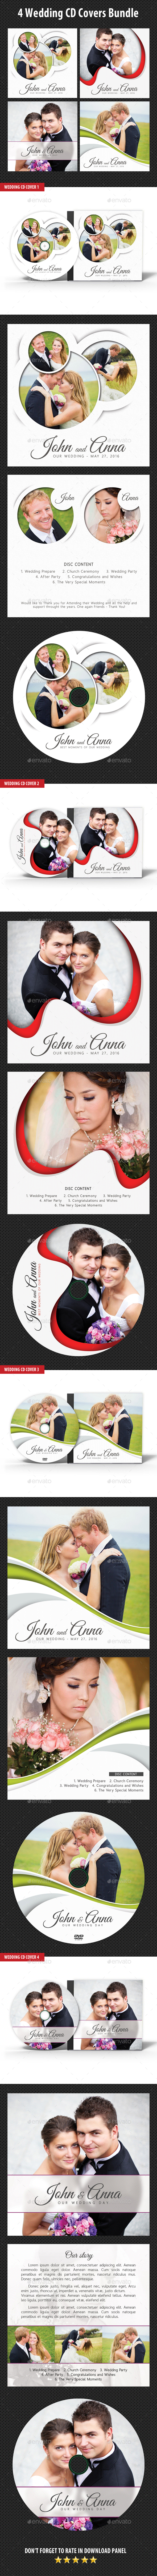 4 in 1 Wedding CD Cover Templates Bundle - CD & DVD Artwork Print Templates